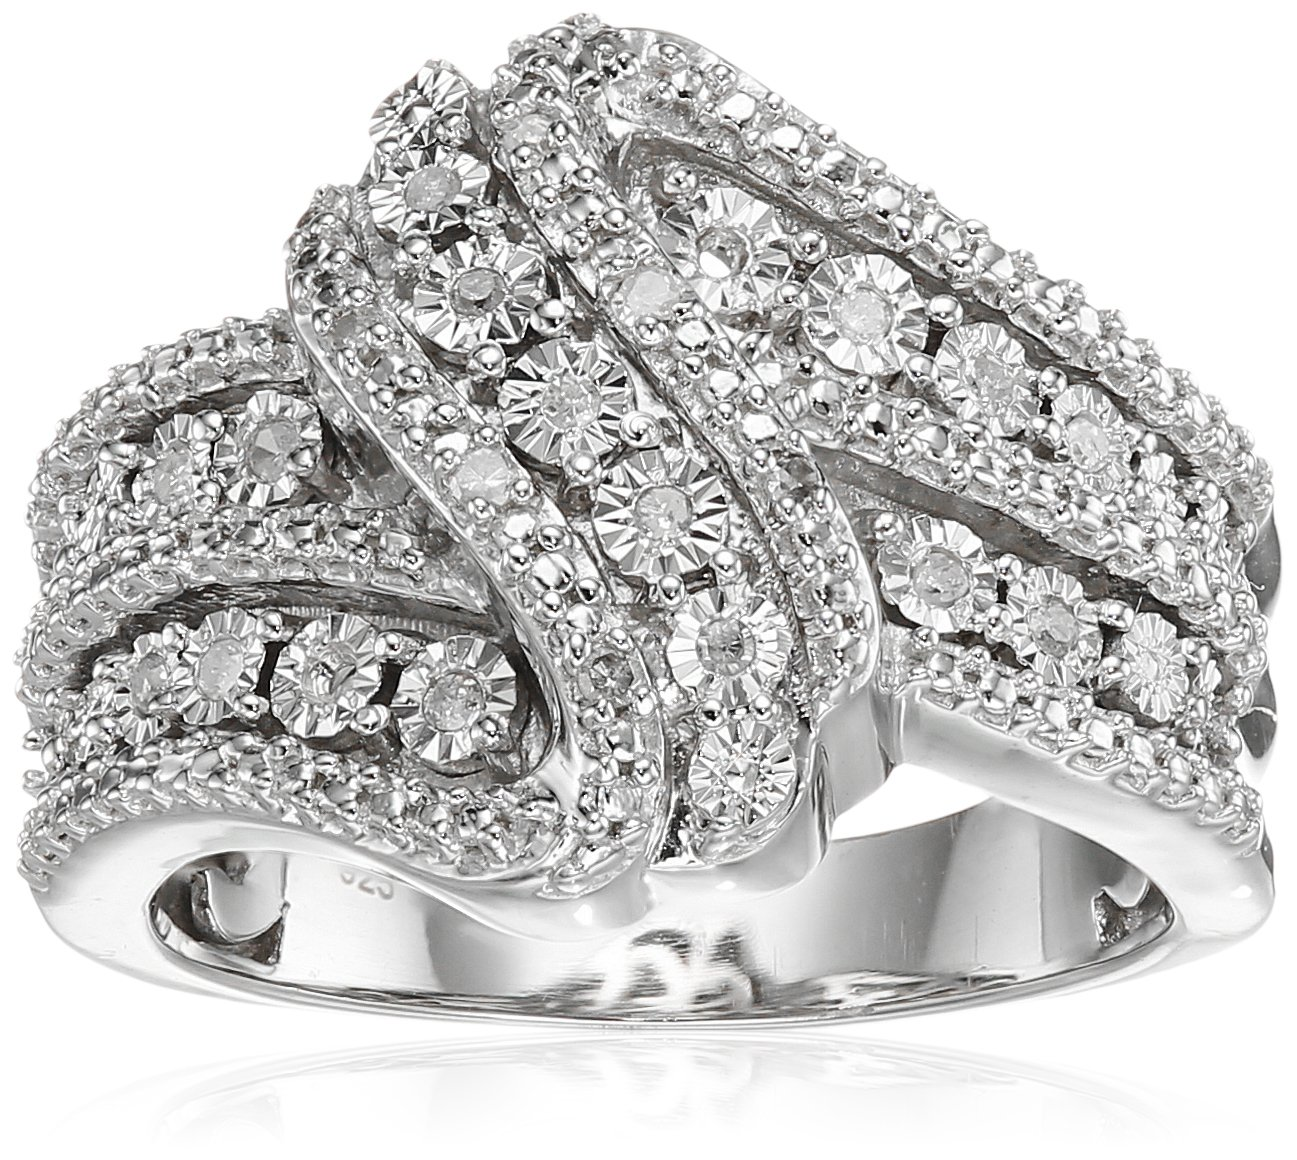 Sterling Silver Diamond 3 Row Twist Fashion Band Ring (1/10 cttw), Size 8